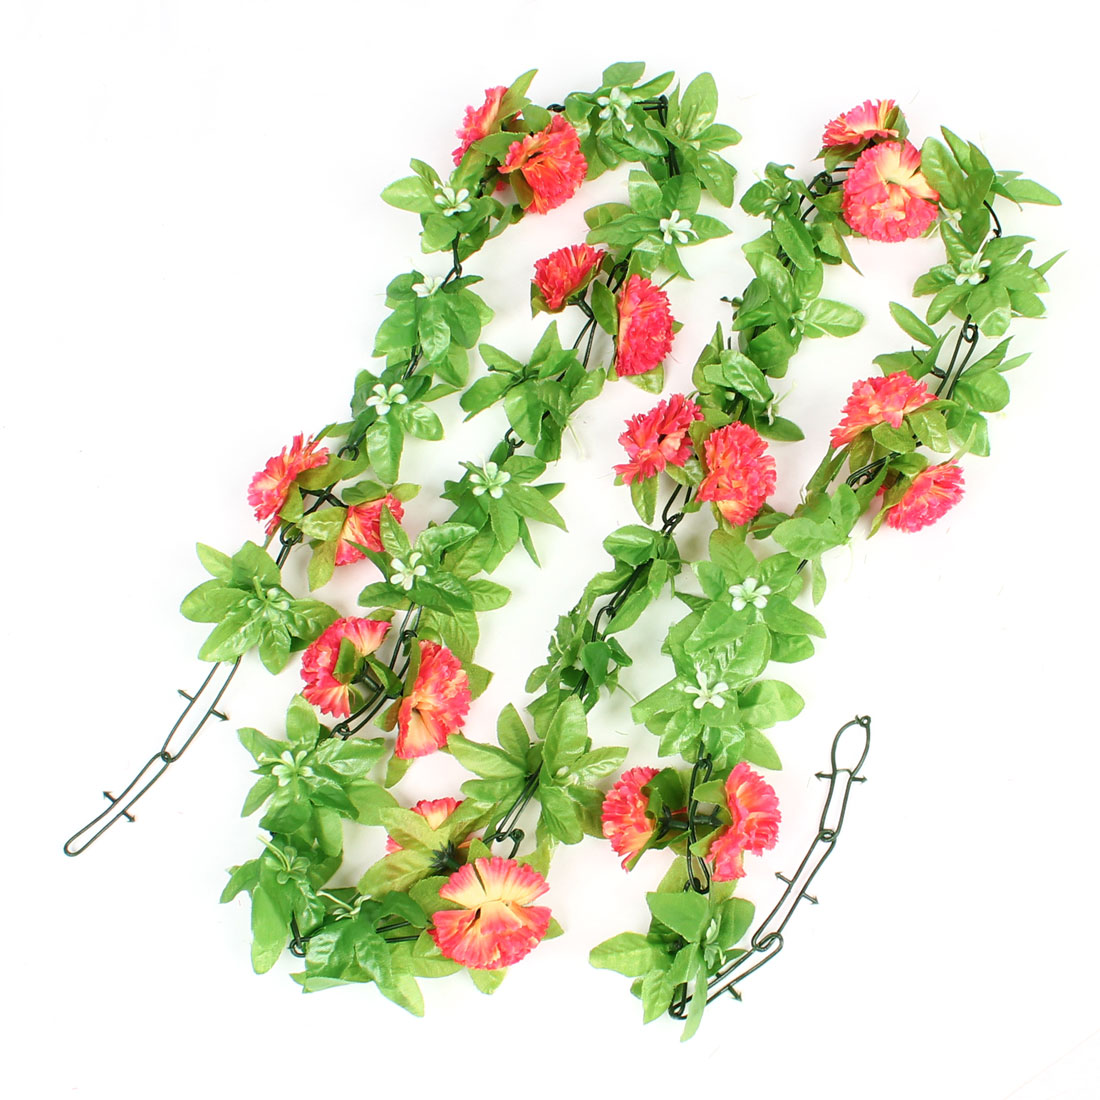 5.9Ft Length Green Plastic Leaf Hot Pink Carnation Flower Vine